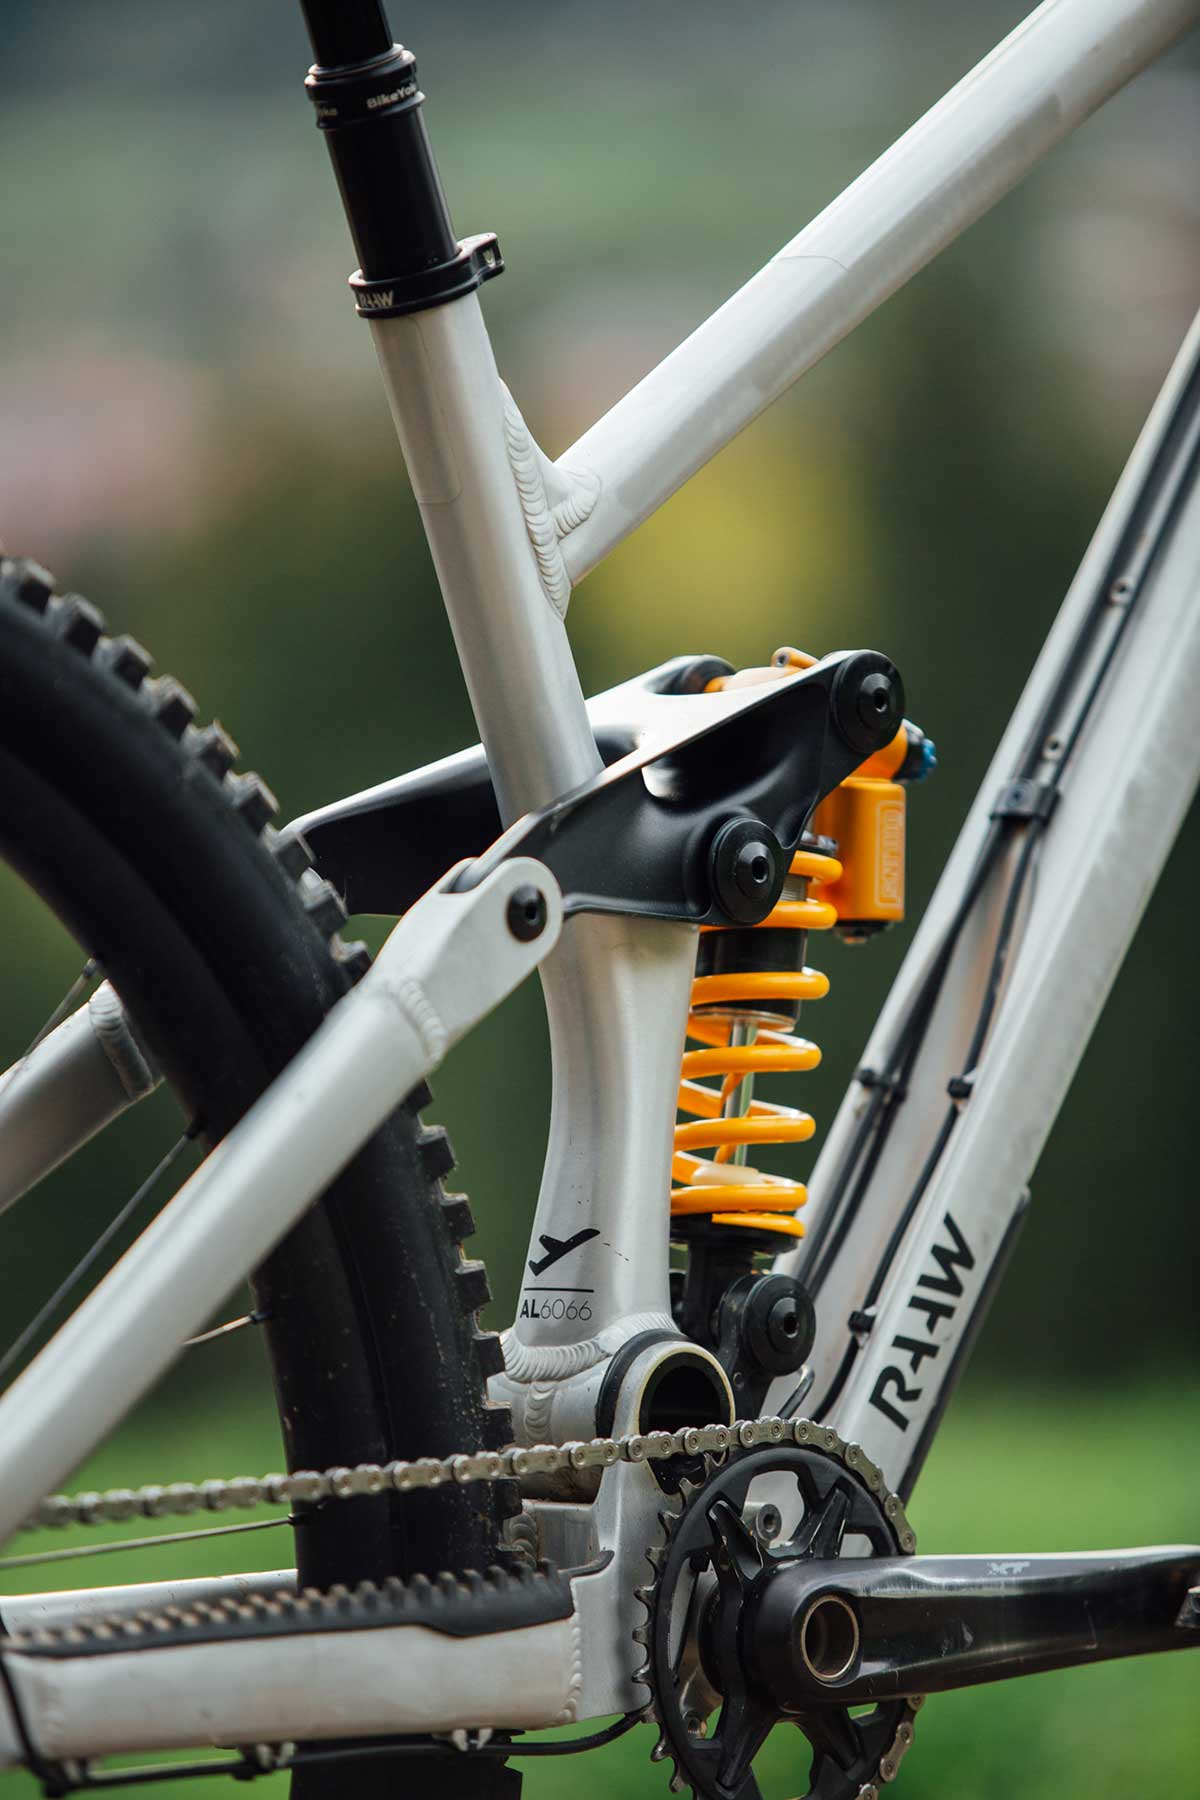 raaw madonna v2.2 redesigned around single piece hydroformed aluminium seat tube lighter stronger